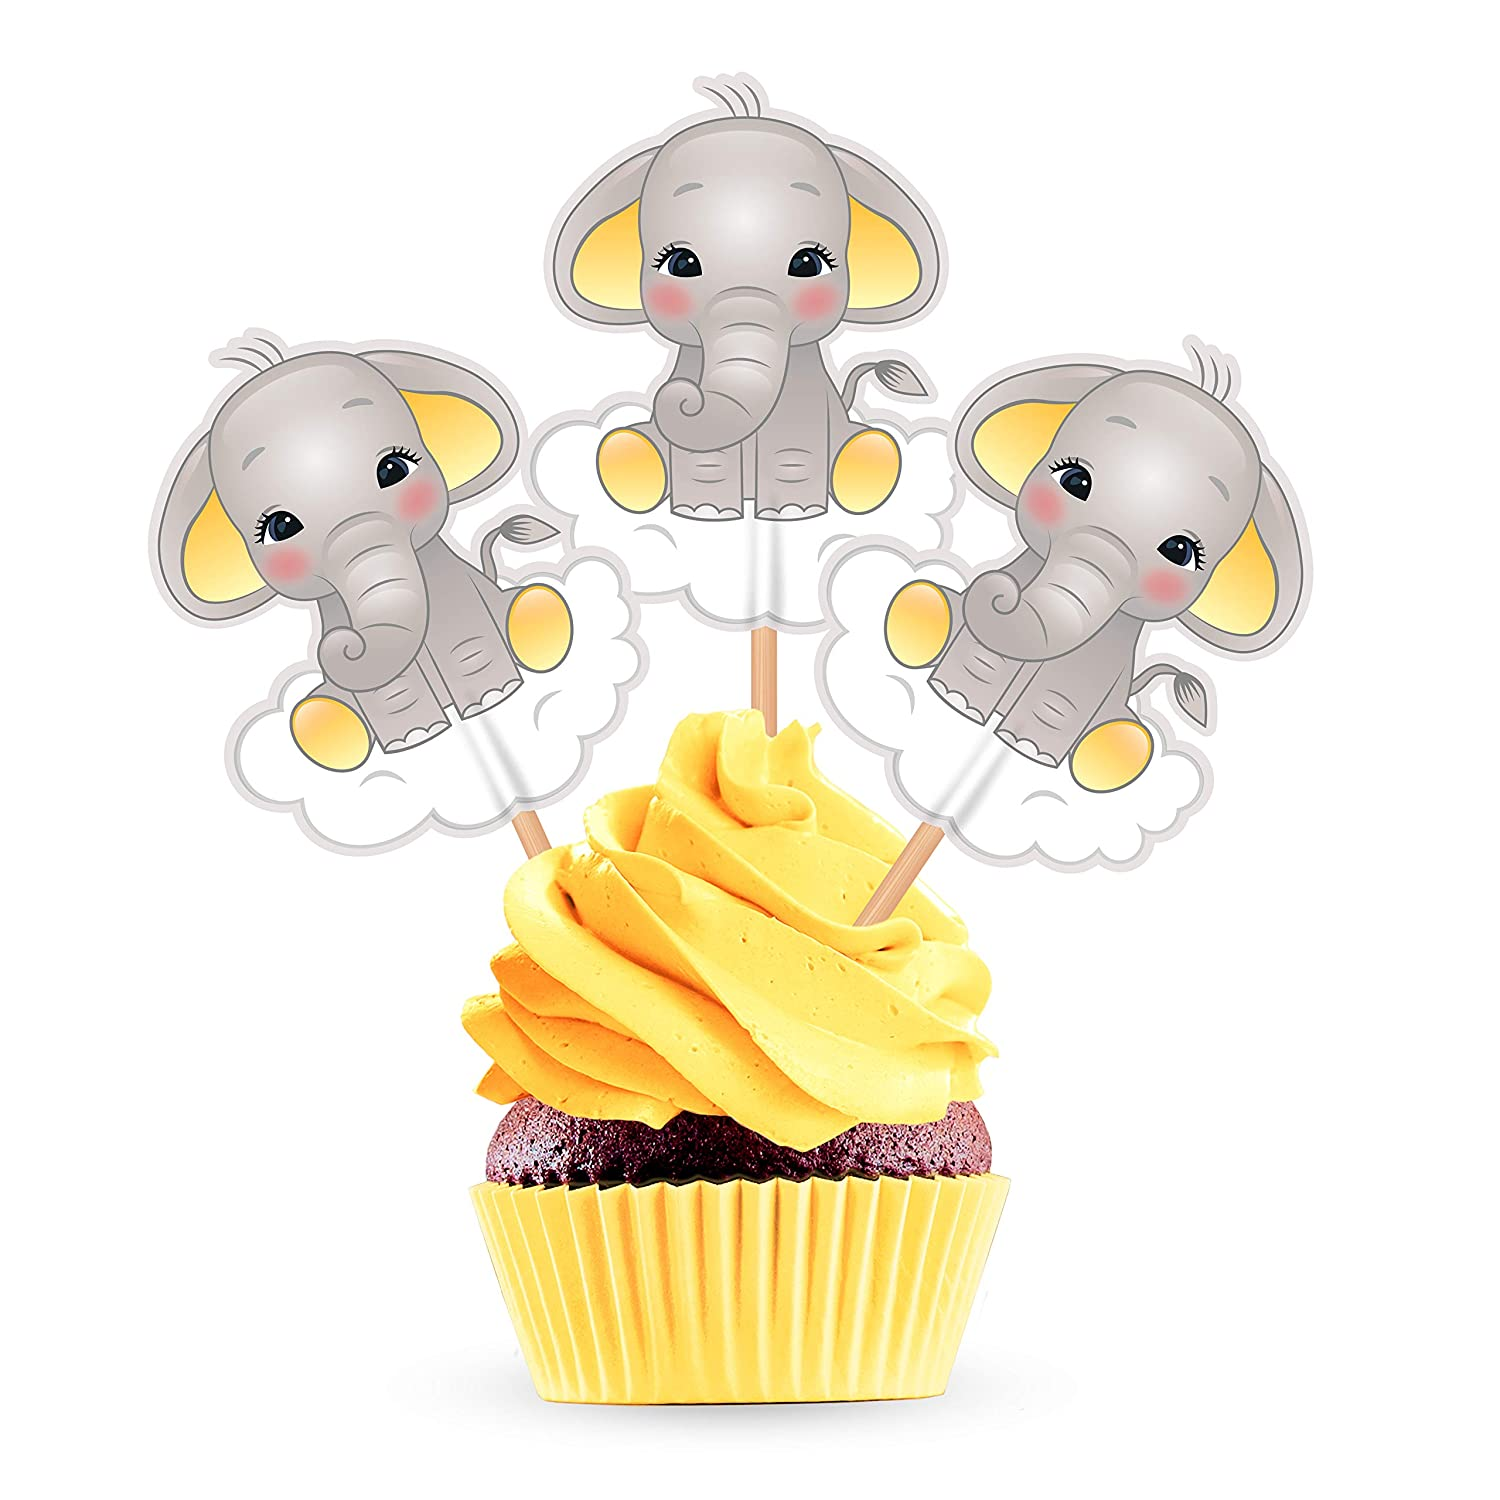 Yellow Elephant Cupcake Cake Toppers - Gender Neutral Baby Shower Birthday Party Decorations Supplies - 25 Pieces